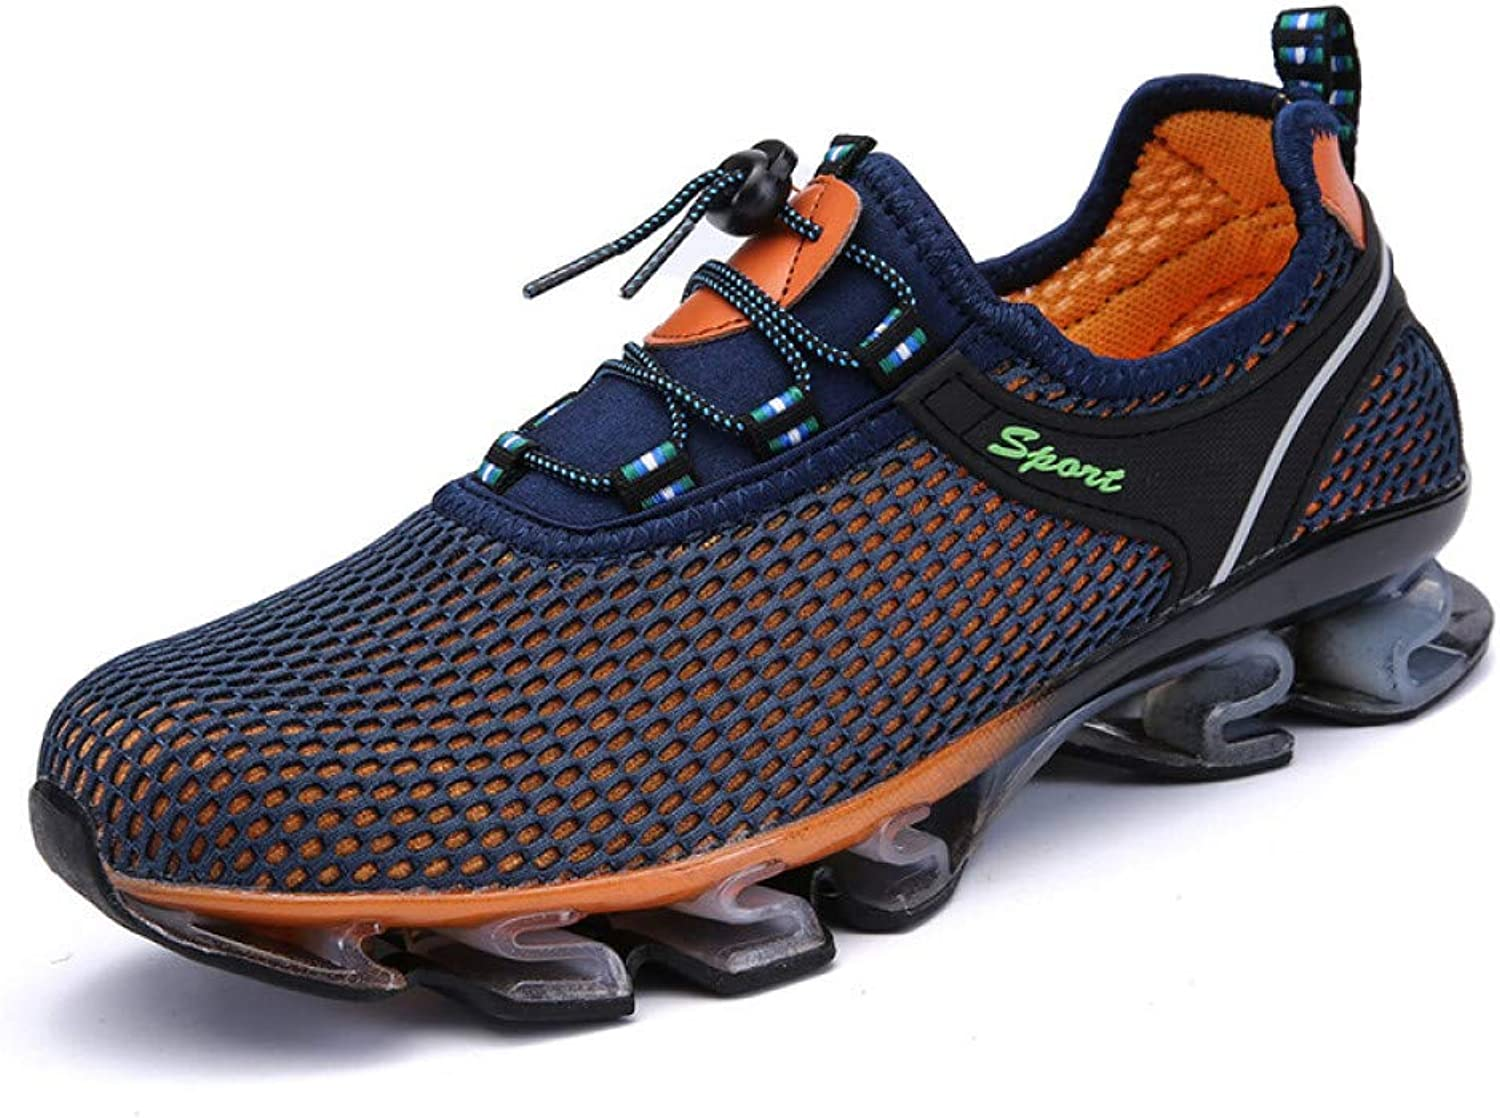 JIAODANBO New Running shoes Sport shoes Fashion Casual Breathable Mesh Men'S shoes